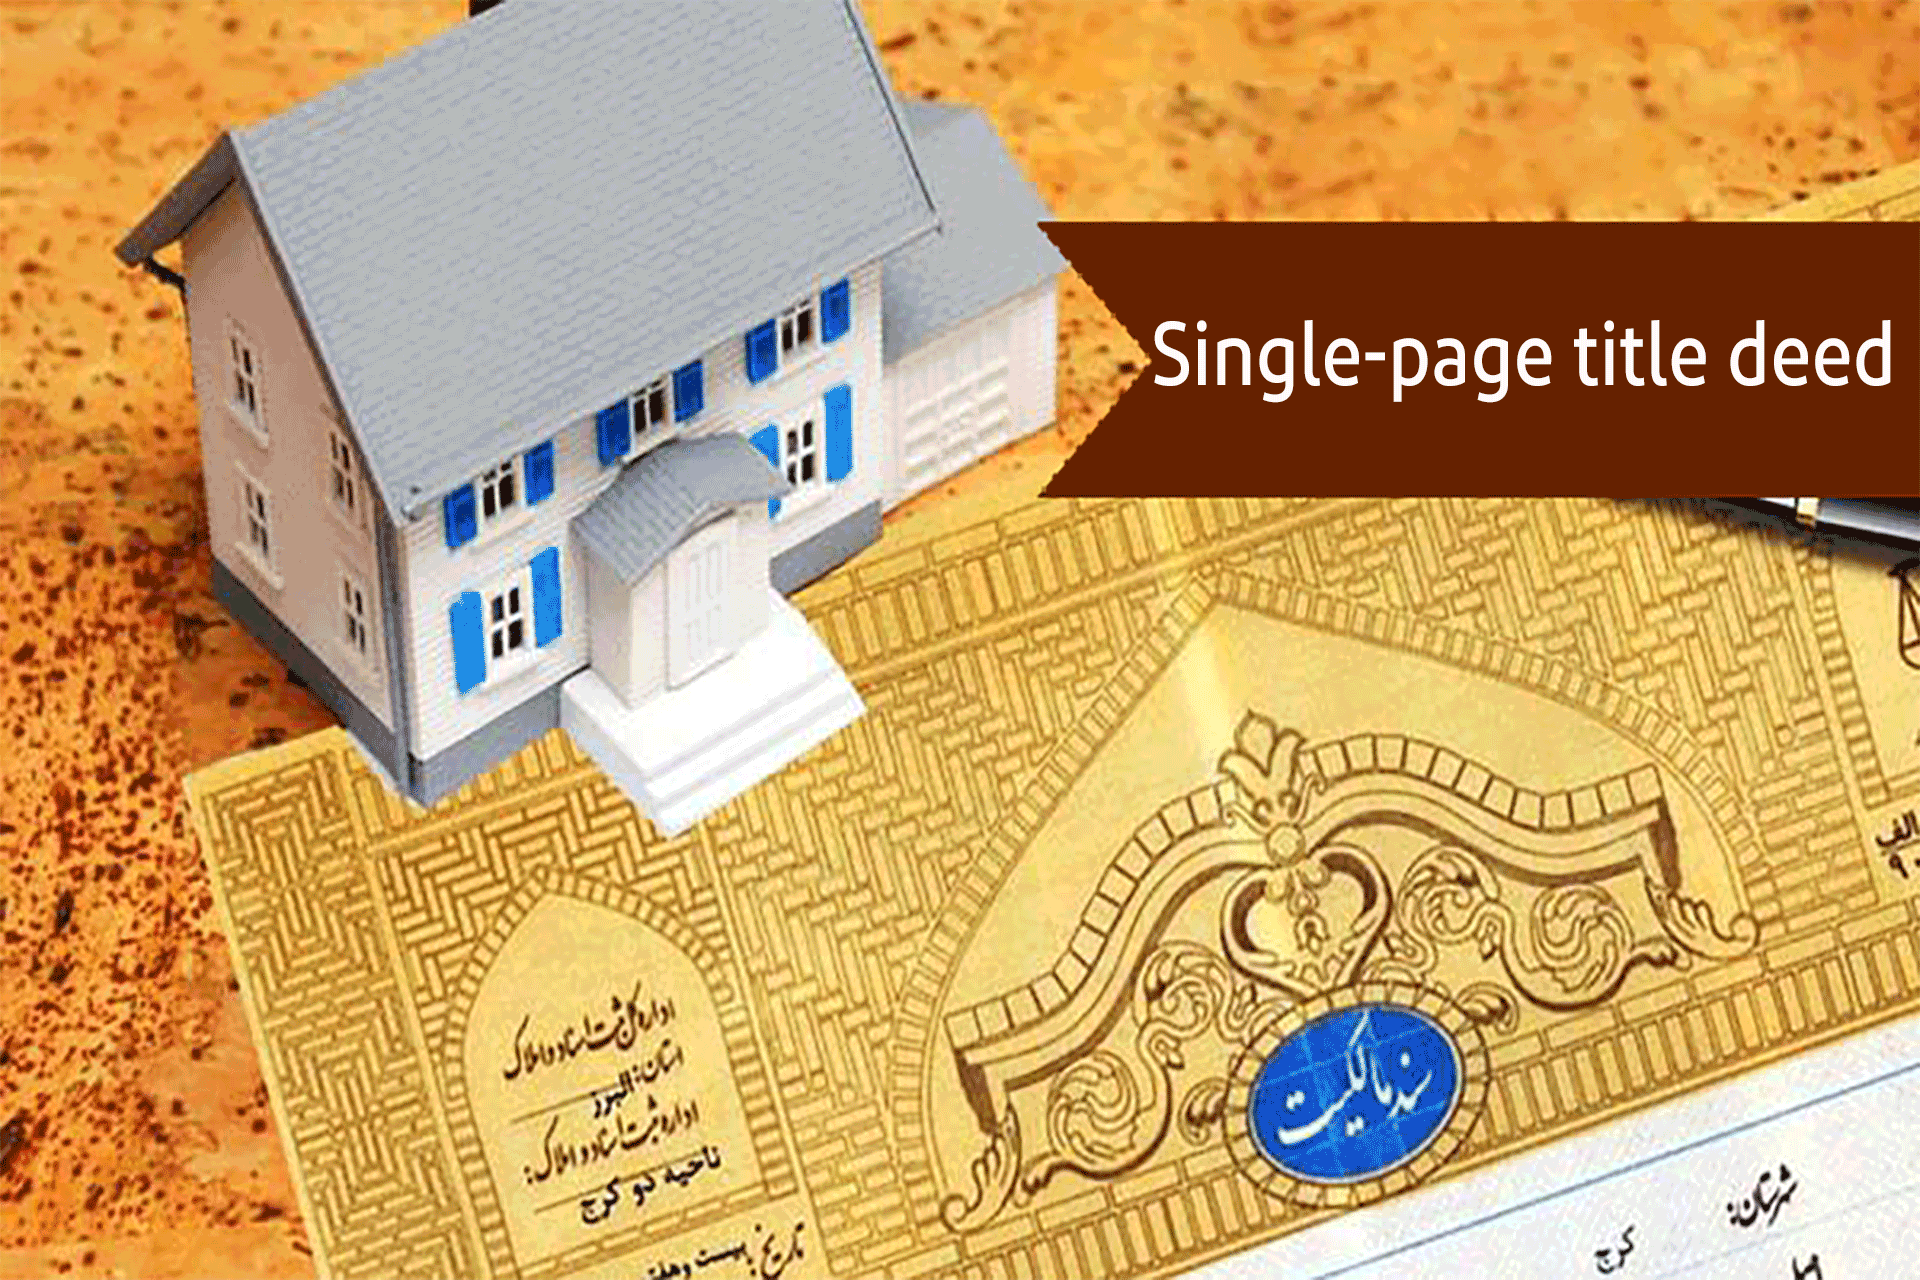 Single-page title deed